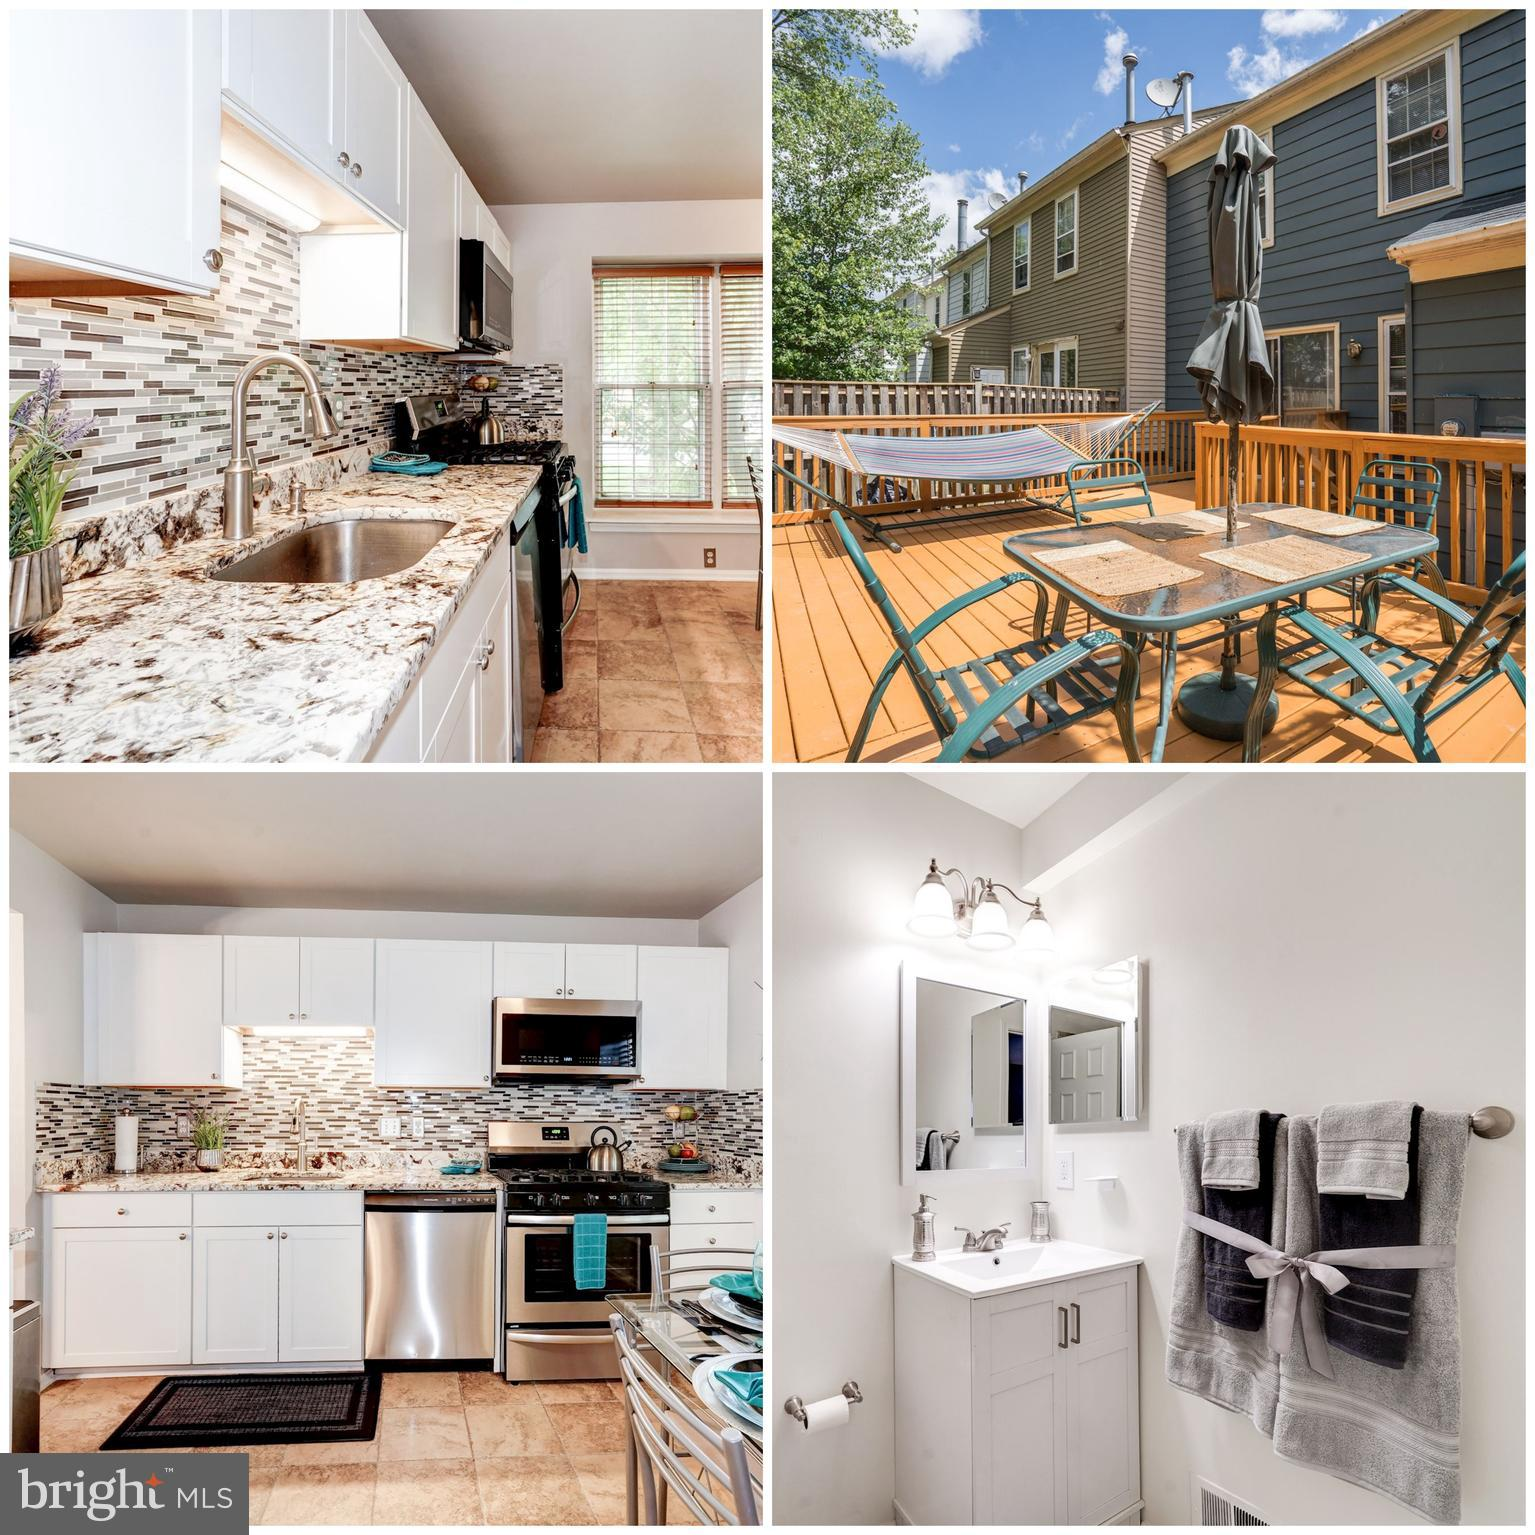 Updated 3 Level END UNIT TH w/ 2 MASTER SUITES + Bonus Room w/ Walk-in Closet: Updated Kitchen w/ ALL NEW Cabinets, Stainless Steel appliances, Granite Counter-tops, Brand-New Carpet on UL, 3.5 Updated Bathrooms, w/ a Huge Deck to entertain on. Walk to public transportation, Shopping Plaza w/ a bank, Chipotle, Starbucks, Giant supermarket, Saratoga Pizzeria, Subway, and many more restaurants . Close to I-95, I-395, Ft. Belvoir, Costco, NGA and the Franconia-Springfield metro.